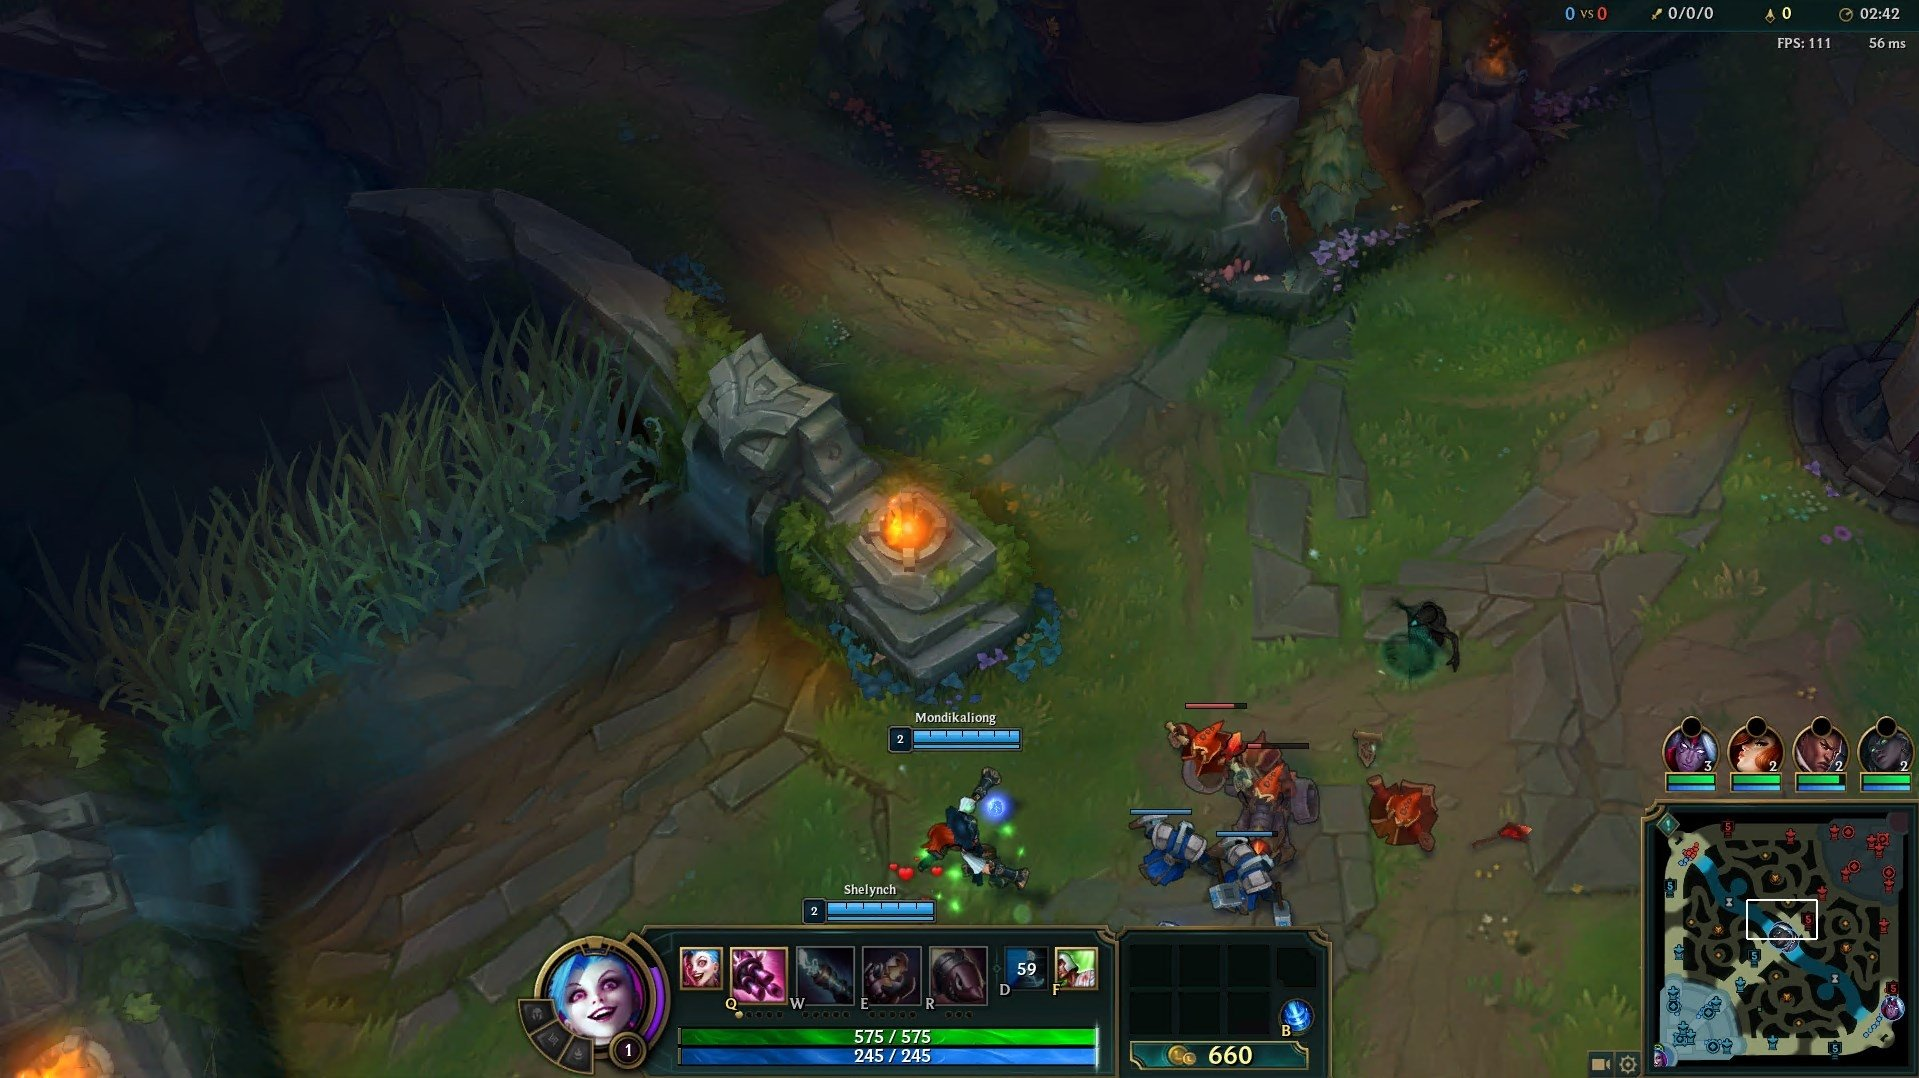 League Of Legends Lol 921294813 Download For Pc Free